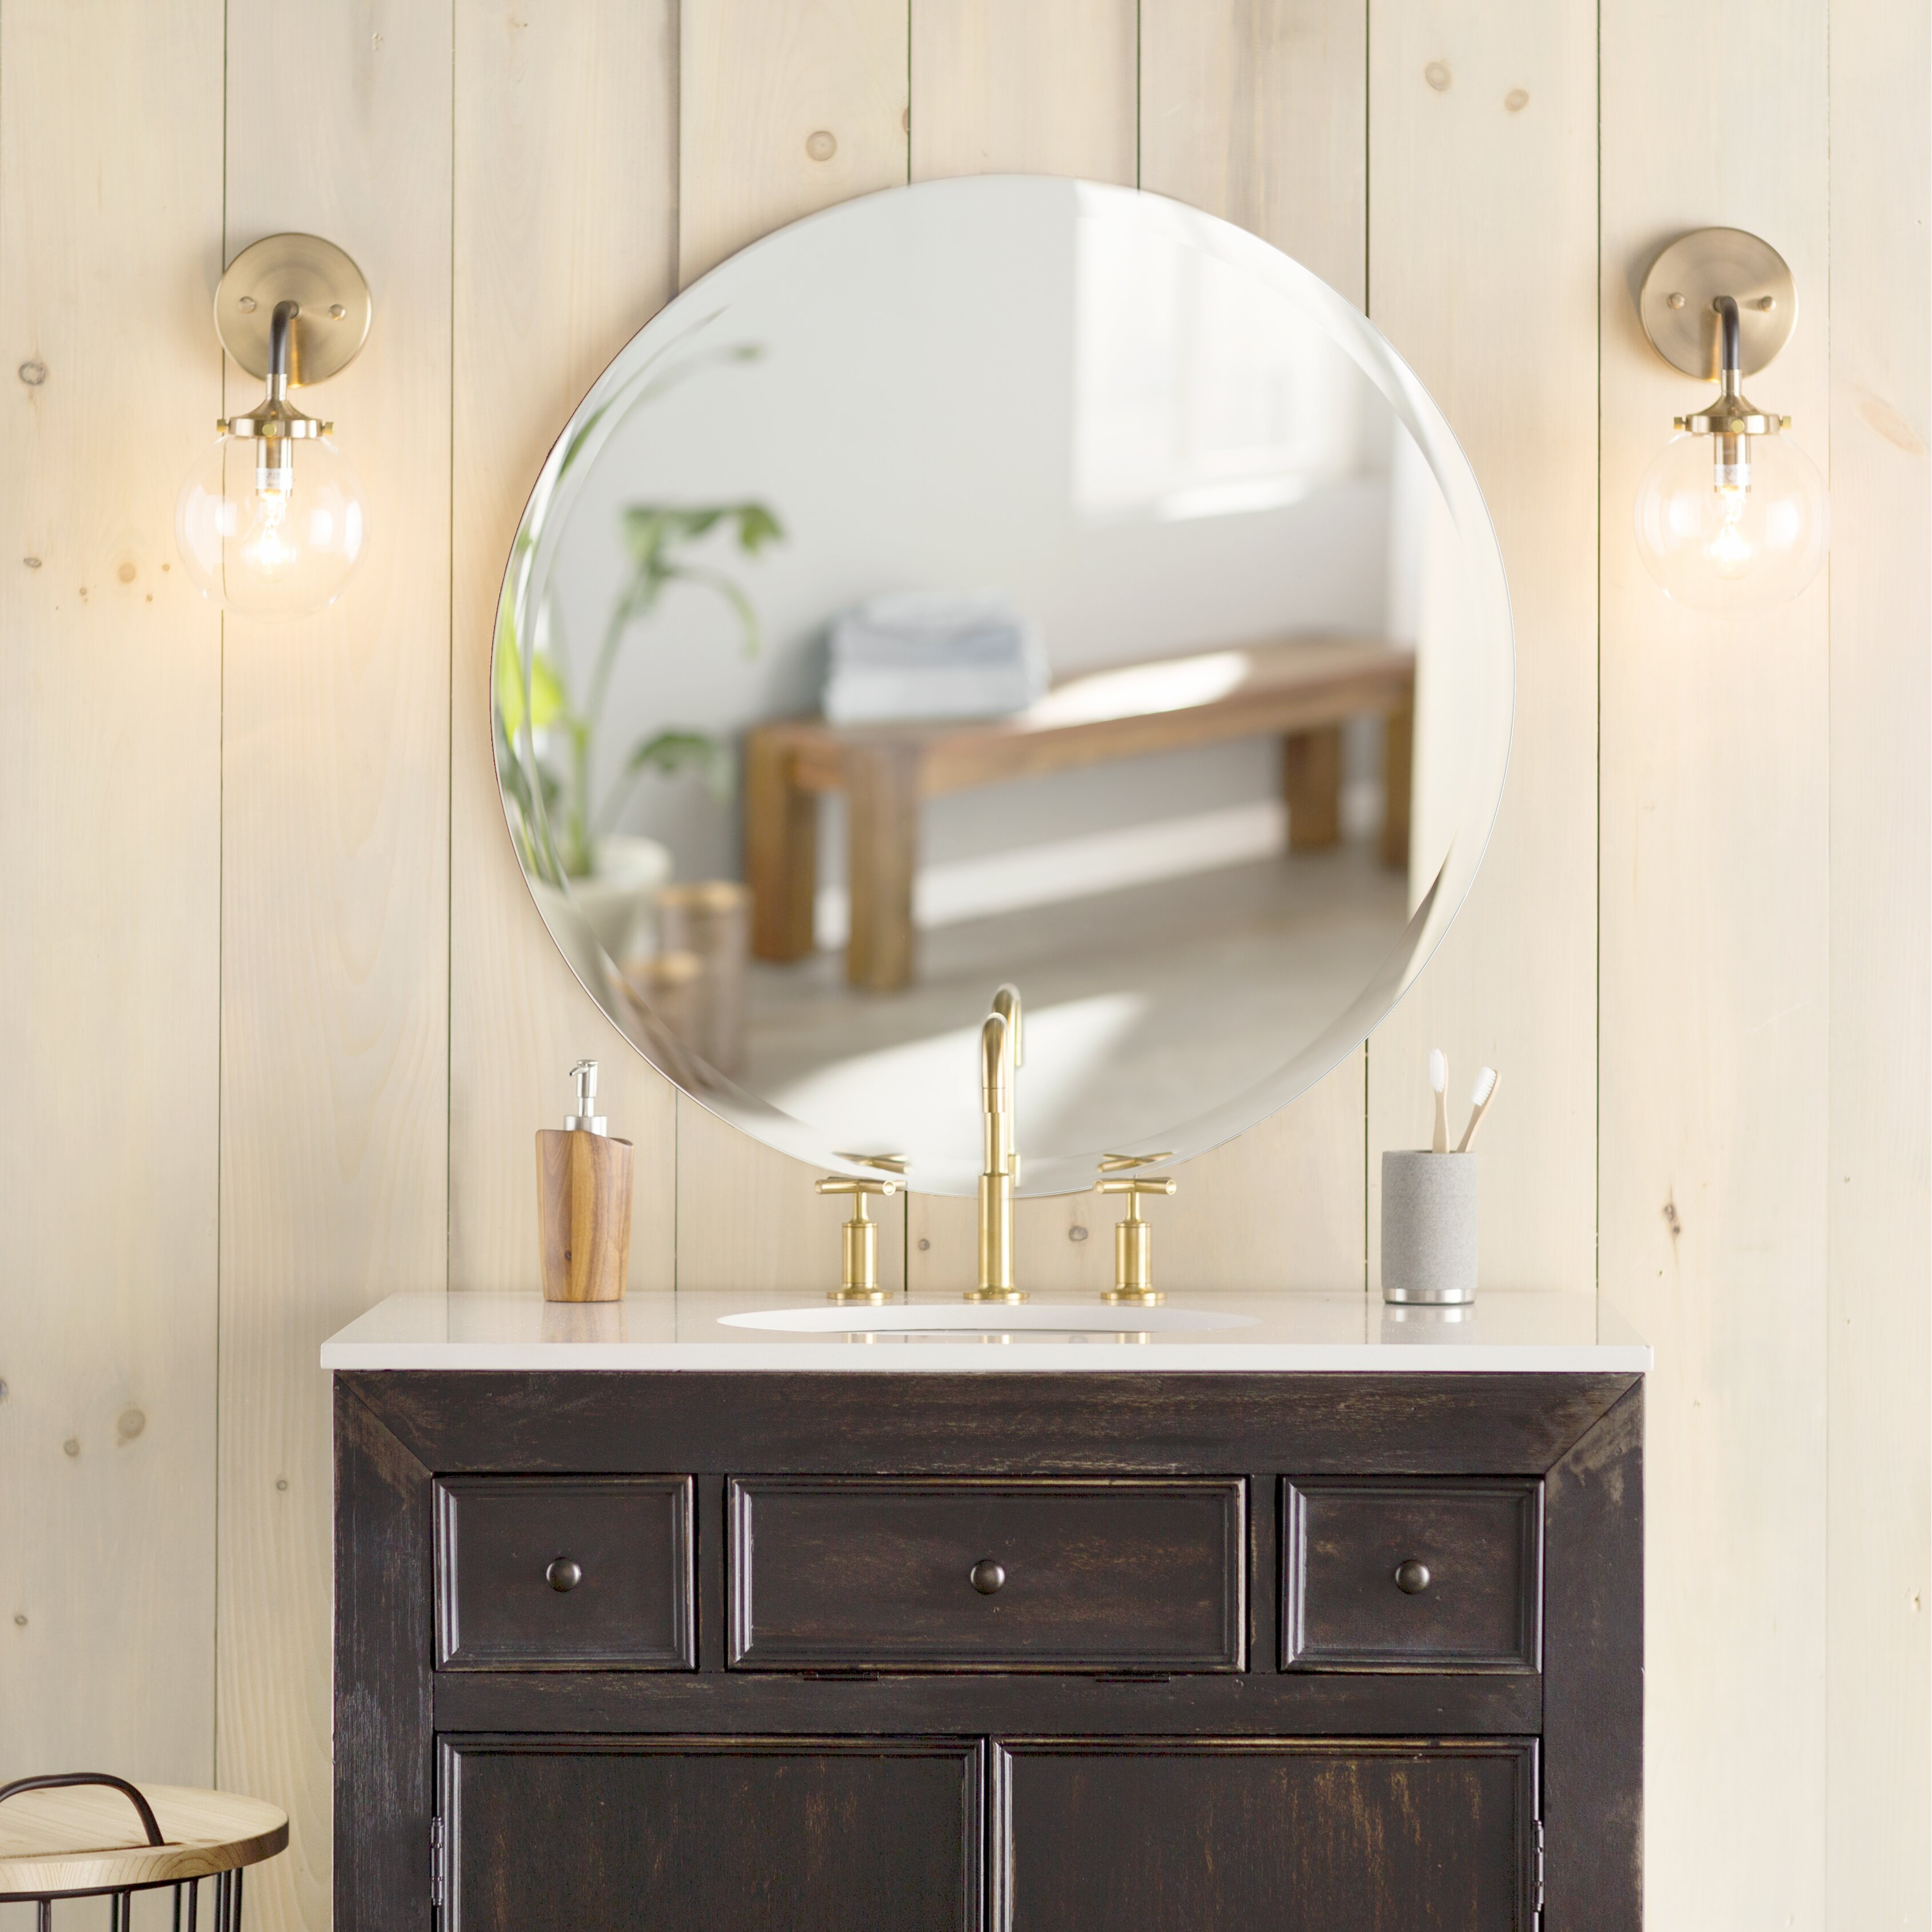 Brayden Studio Molina Wall Mirror & Reviews